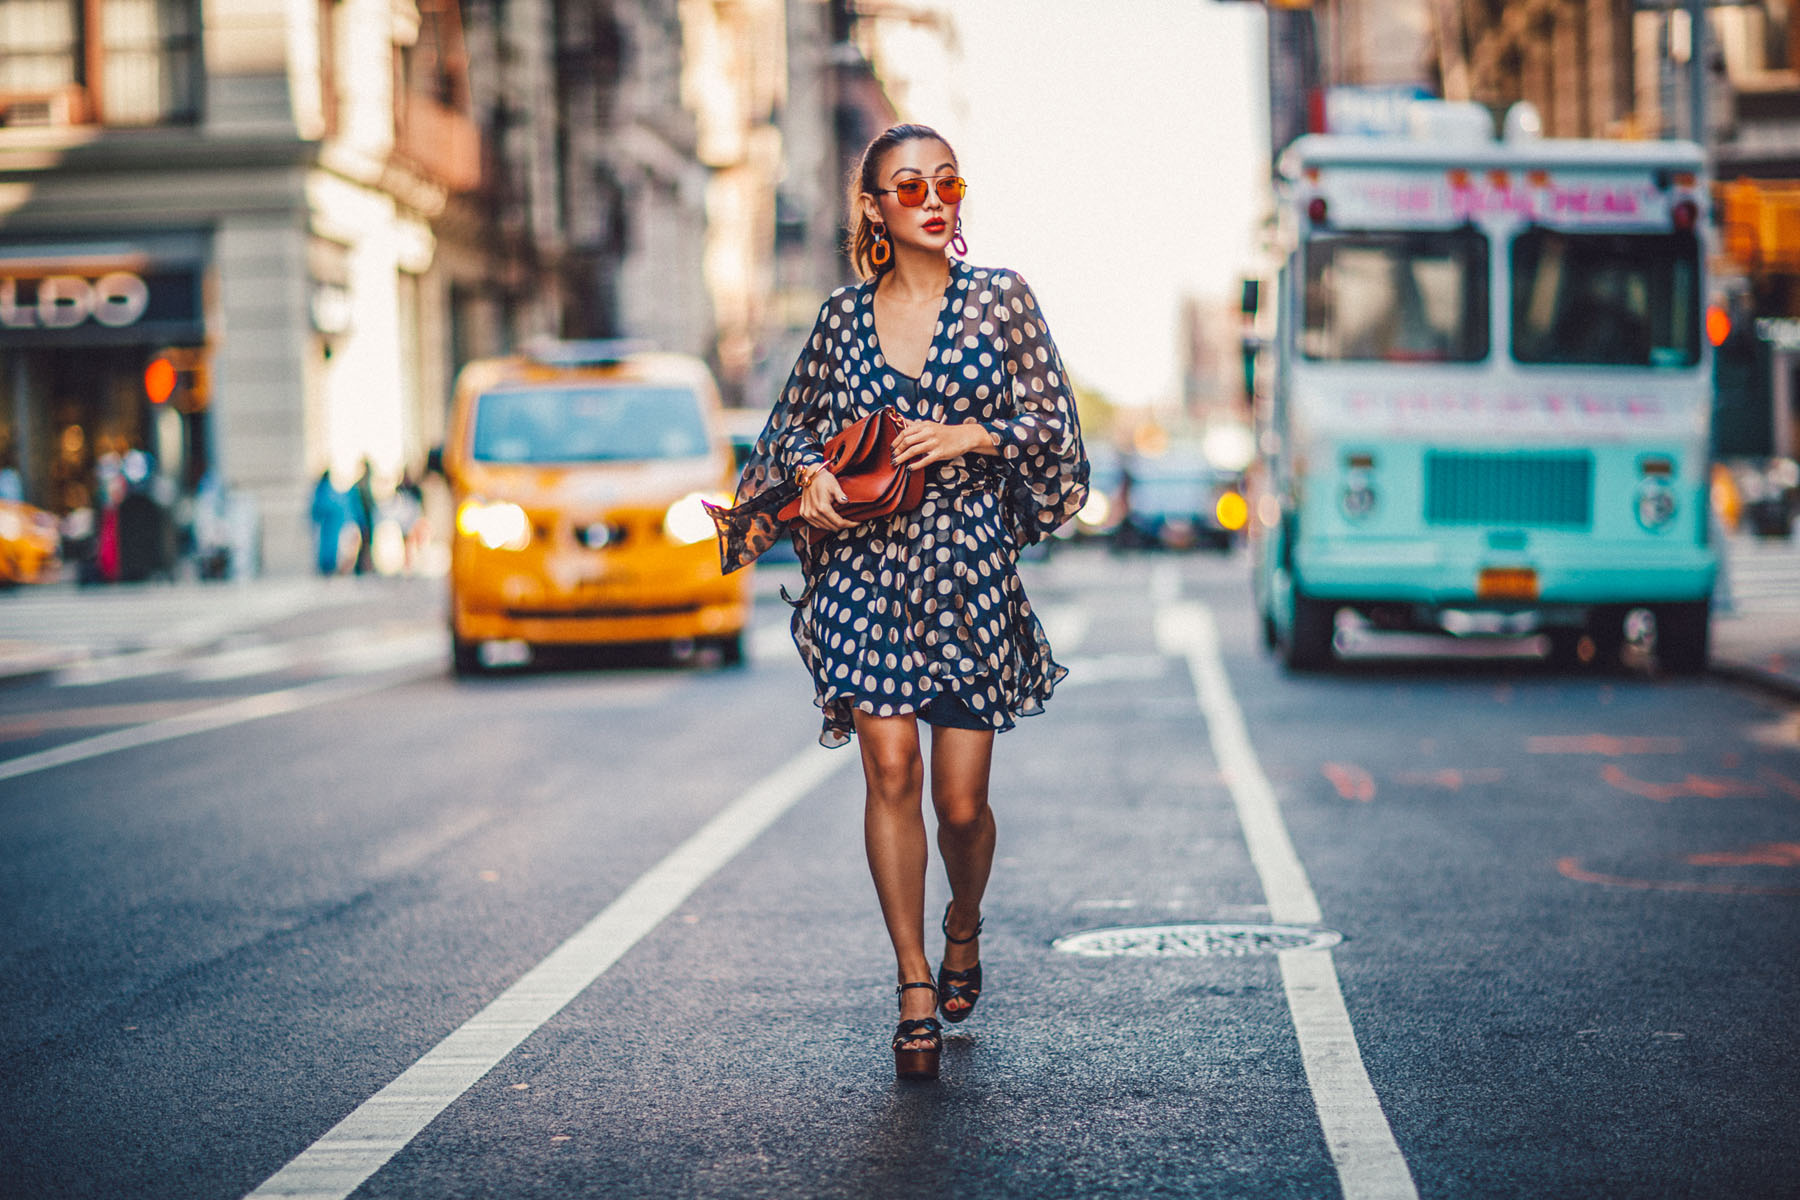 Essential Photography Tips for New Bloggers - Zimmerman dress // NotJessFashion.com // jessica wang, new york fashion blogger, asian blogger, fashion blogger street style, street style fashion, farfetch fashion, polkda dot dress, ysl heels, brown aviators, statement earrings, fashion week style